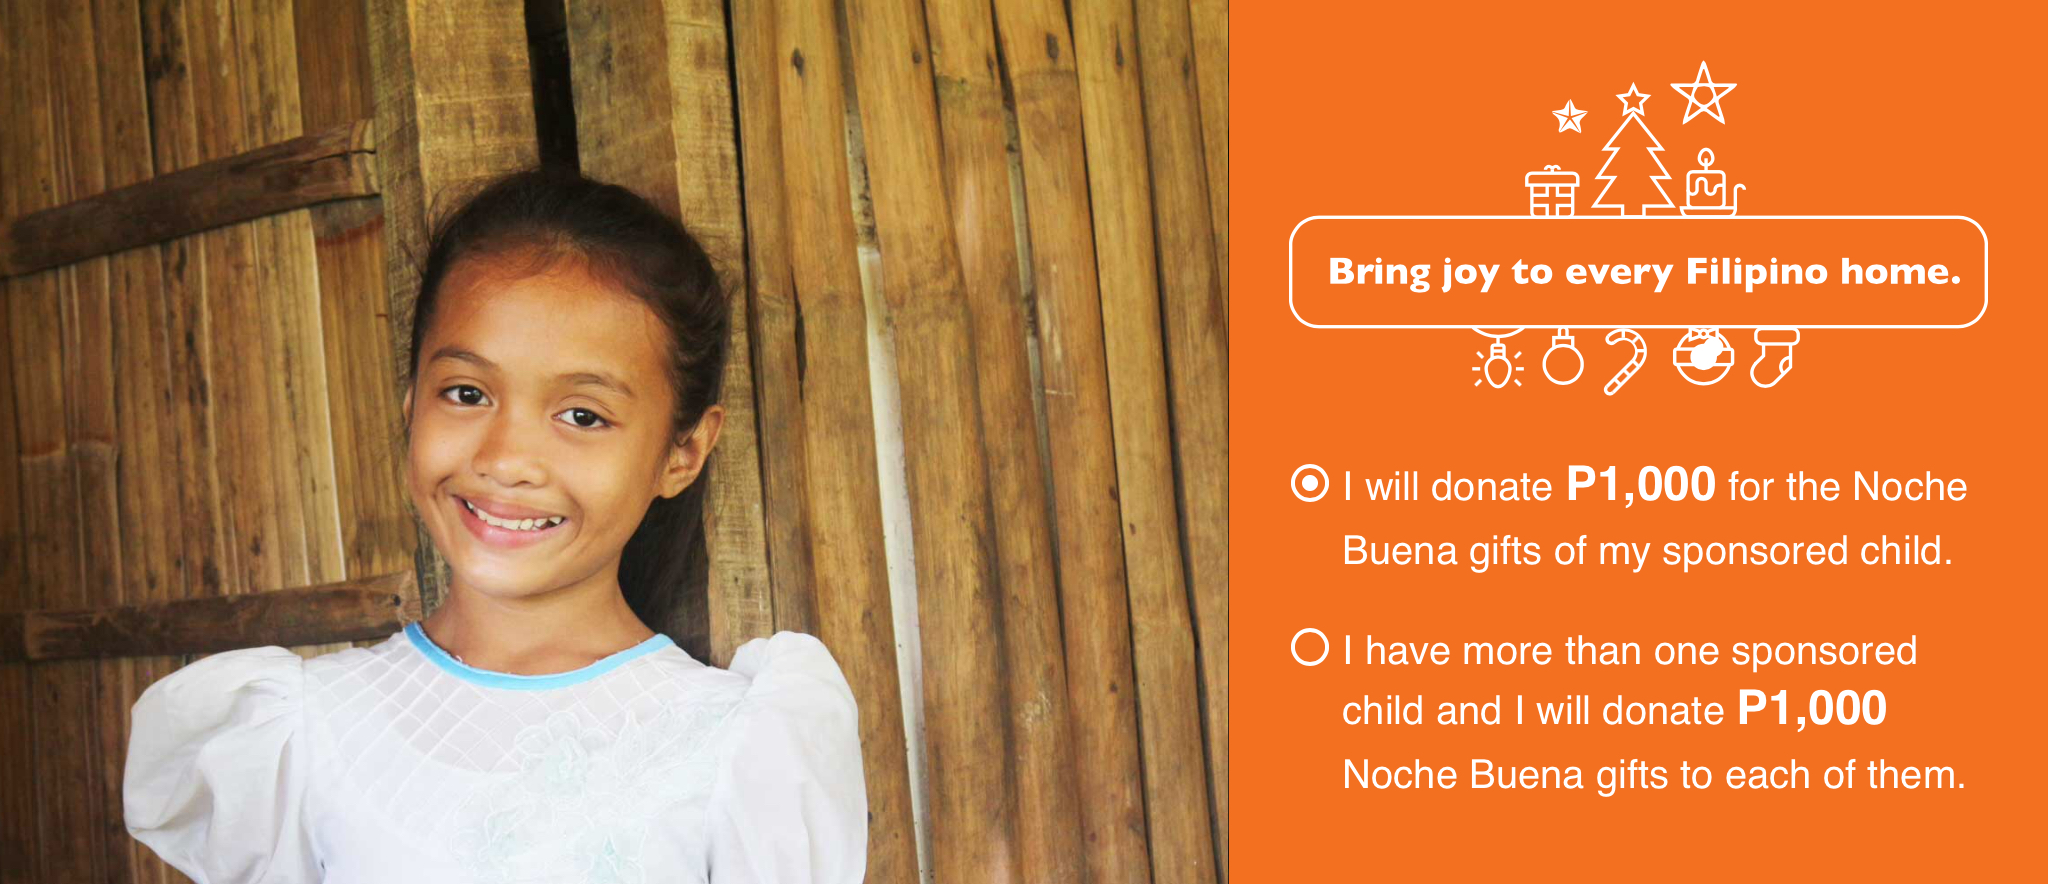 photo from World Vision Philippines